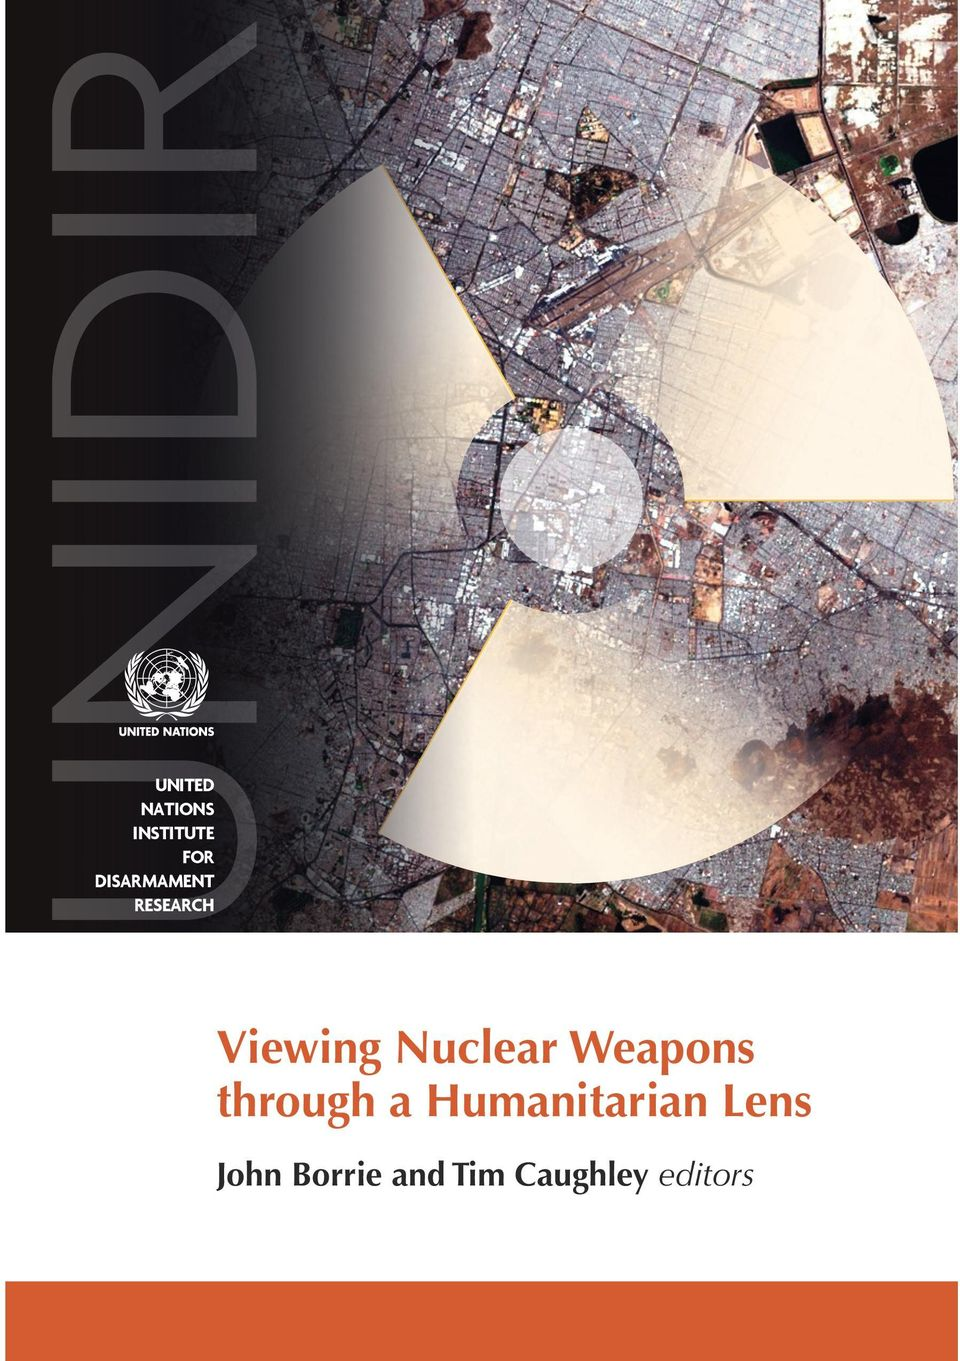 Drawing on a range of perspectives, this volume explores what viewing nuclear weapons through a humanitarian lens entails, and why it is of value.